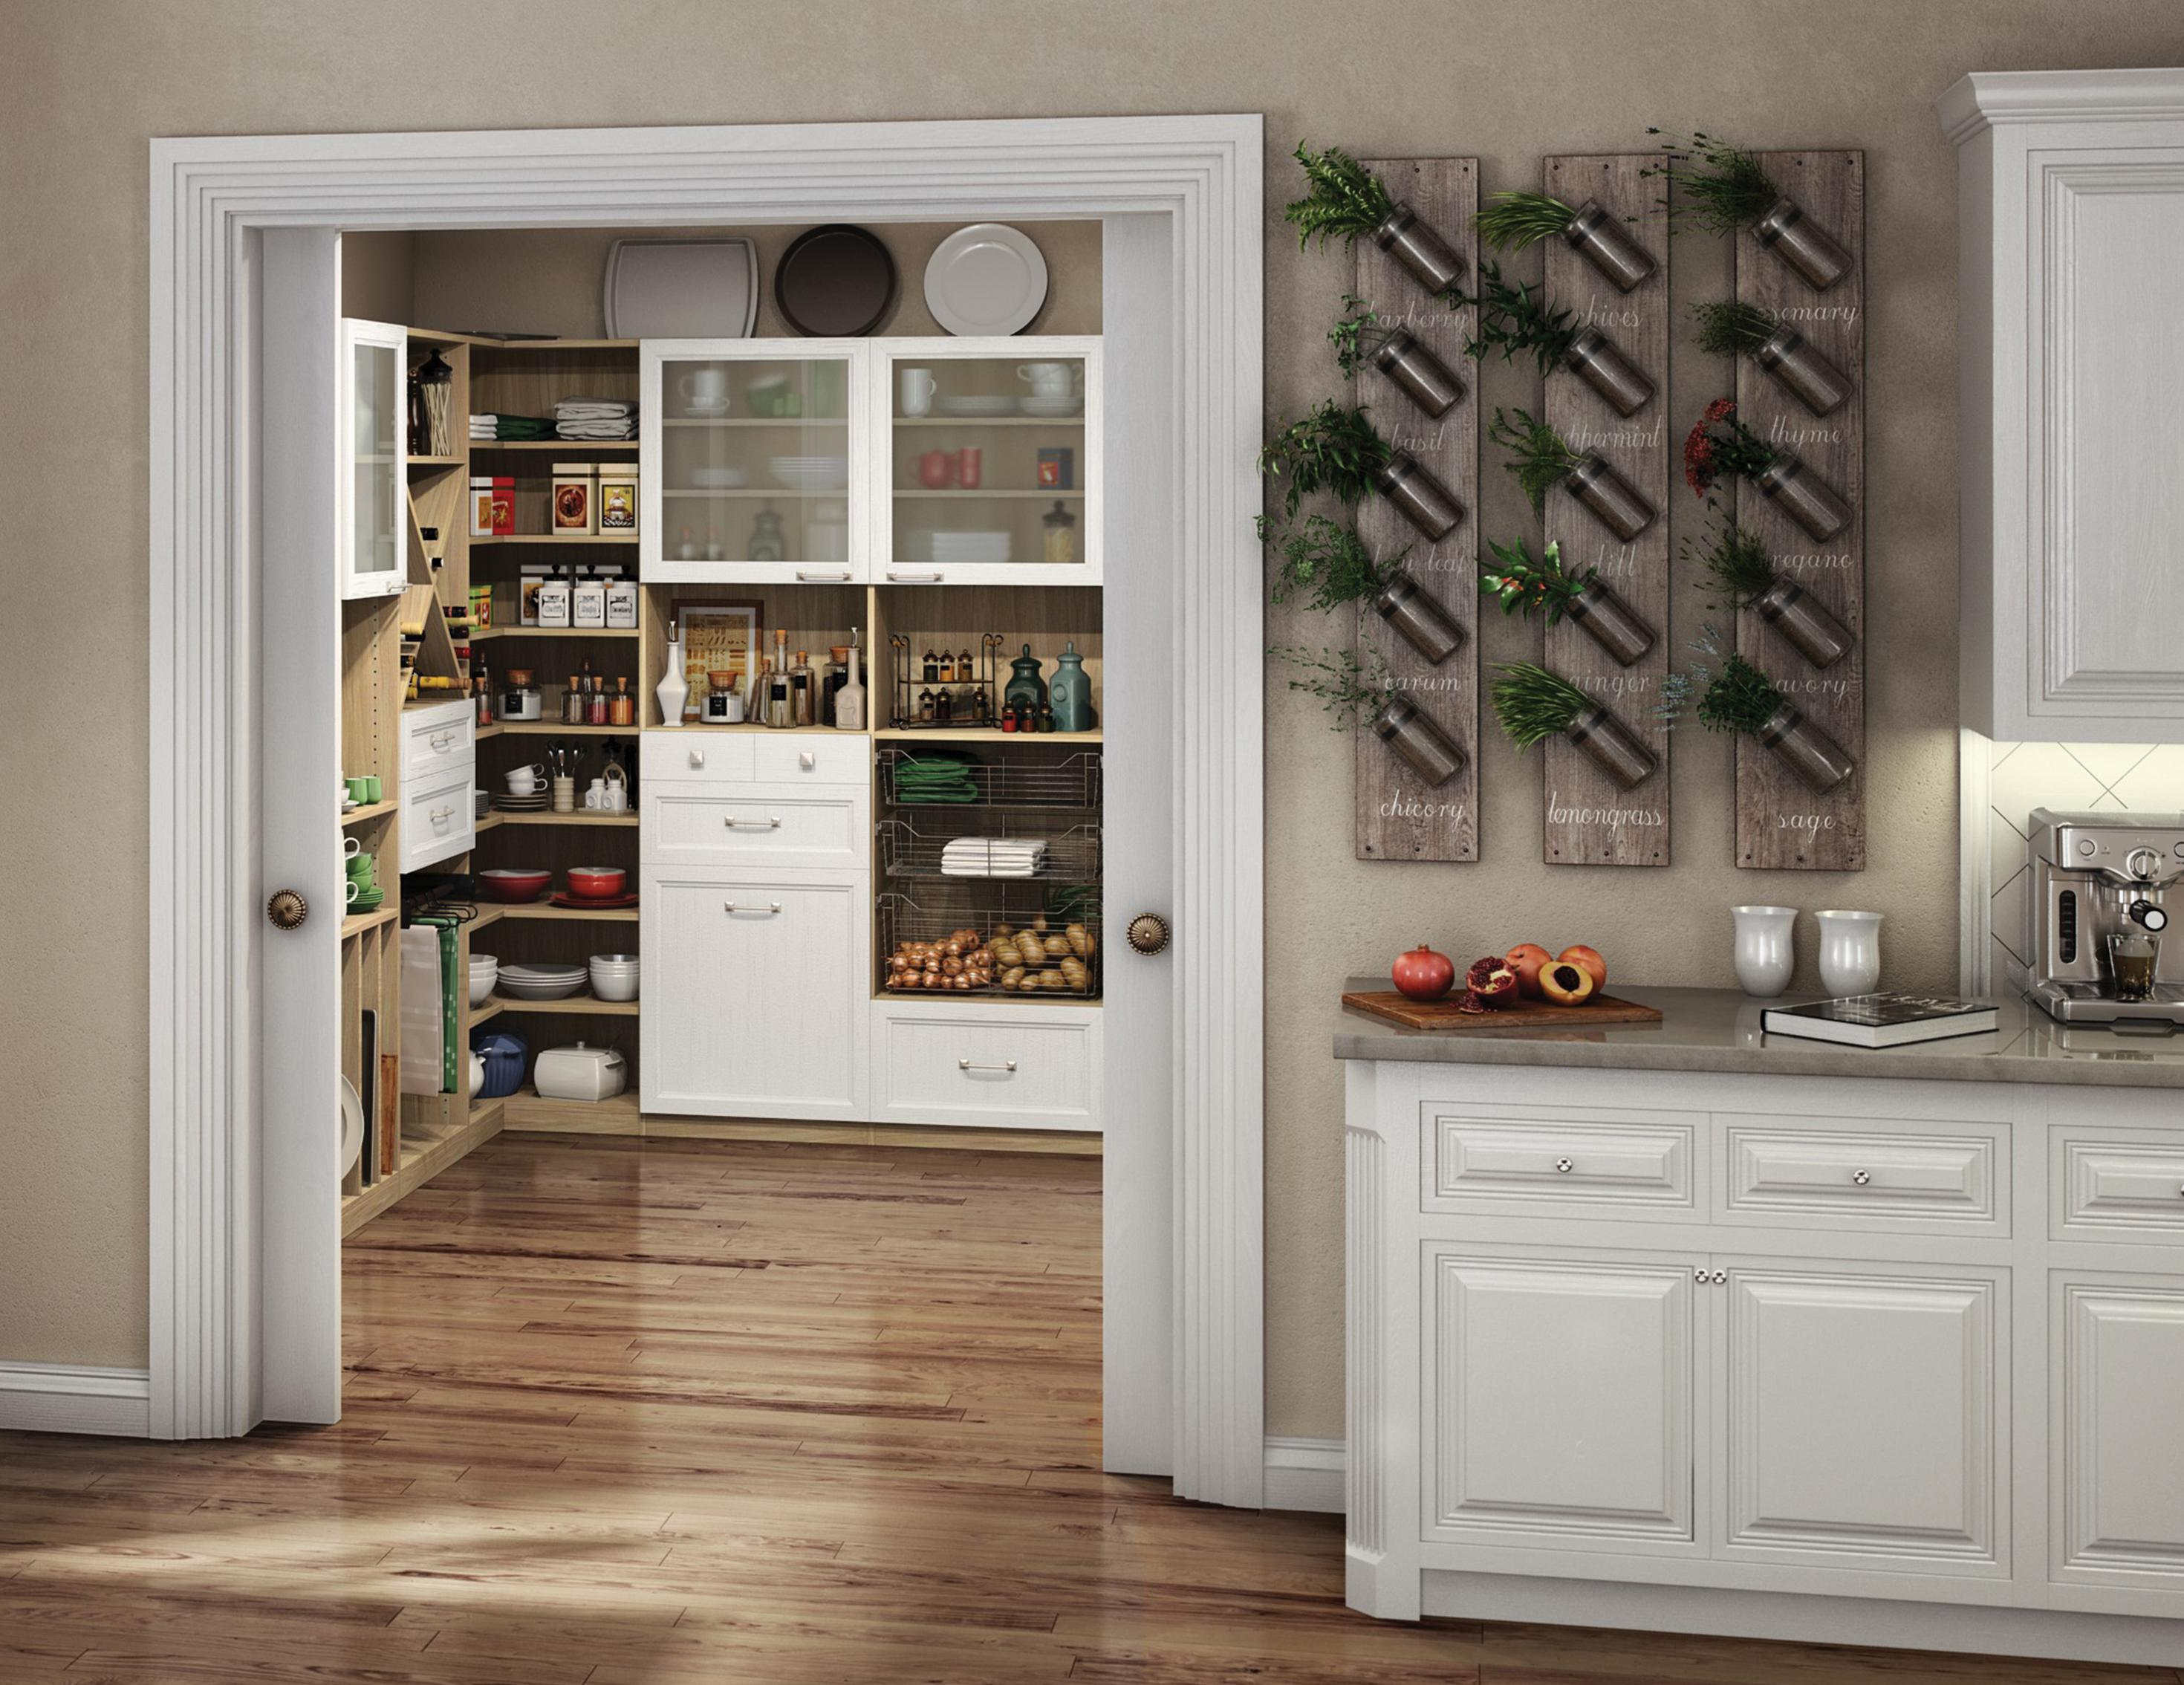 California Closets London - California Closets London - Chef Pantry and Kitchen Storage System